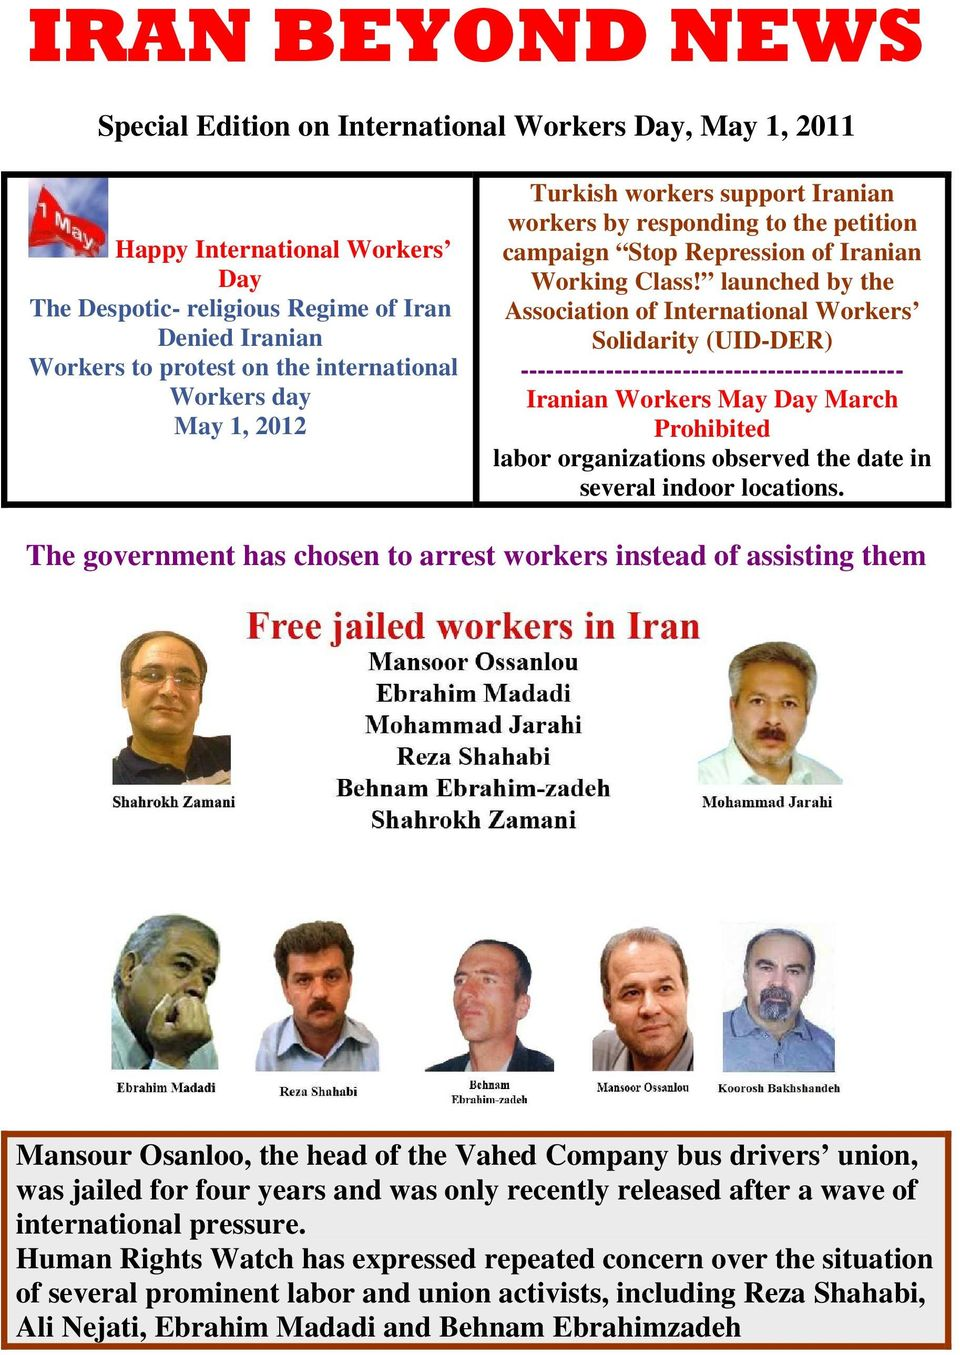 launched by the Association of International Workers Solidarity (UID-DER) --------------------------------------------- Iranian Workers May Day March Prohibited labor organizations observed the date